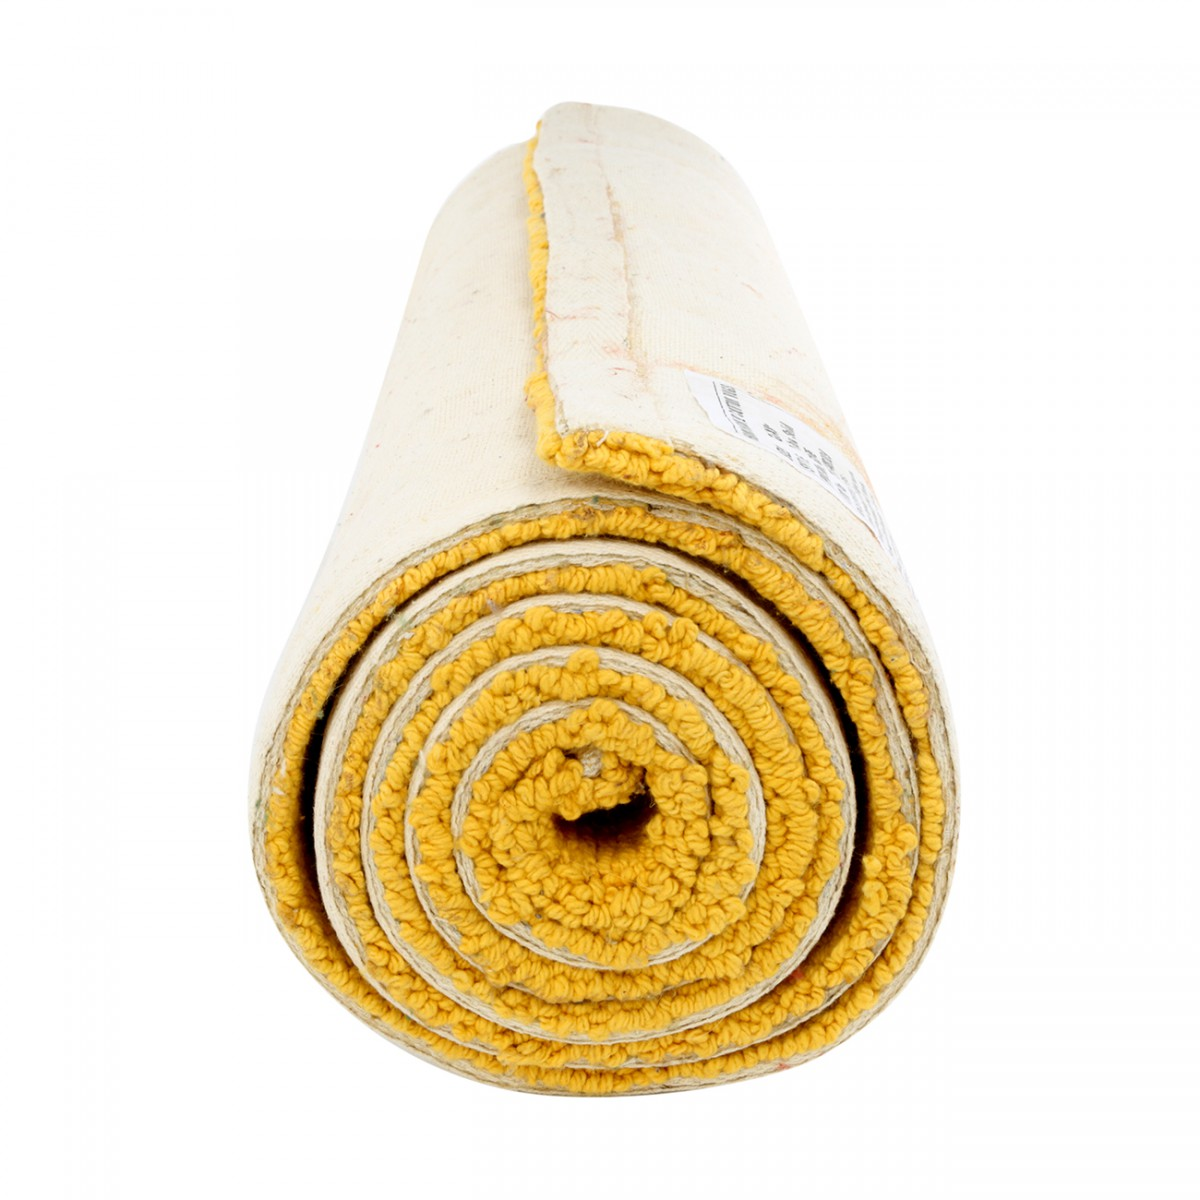 Carpet Runner Yellow 100% Cotton Hooked Rug 30 x 96 Carpet Runner Area Rug Accent Rugs